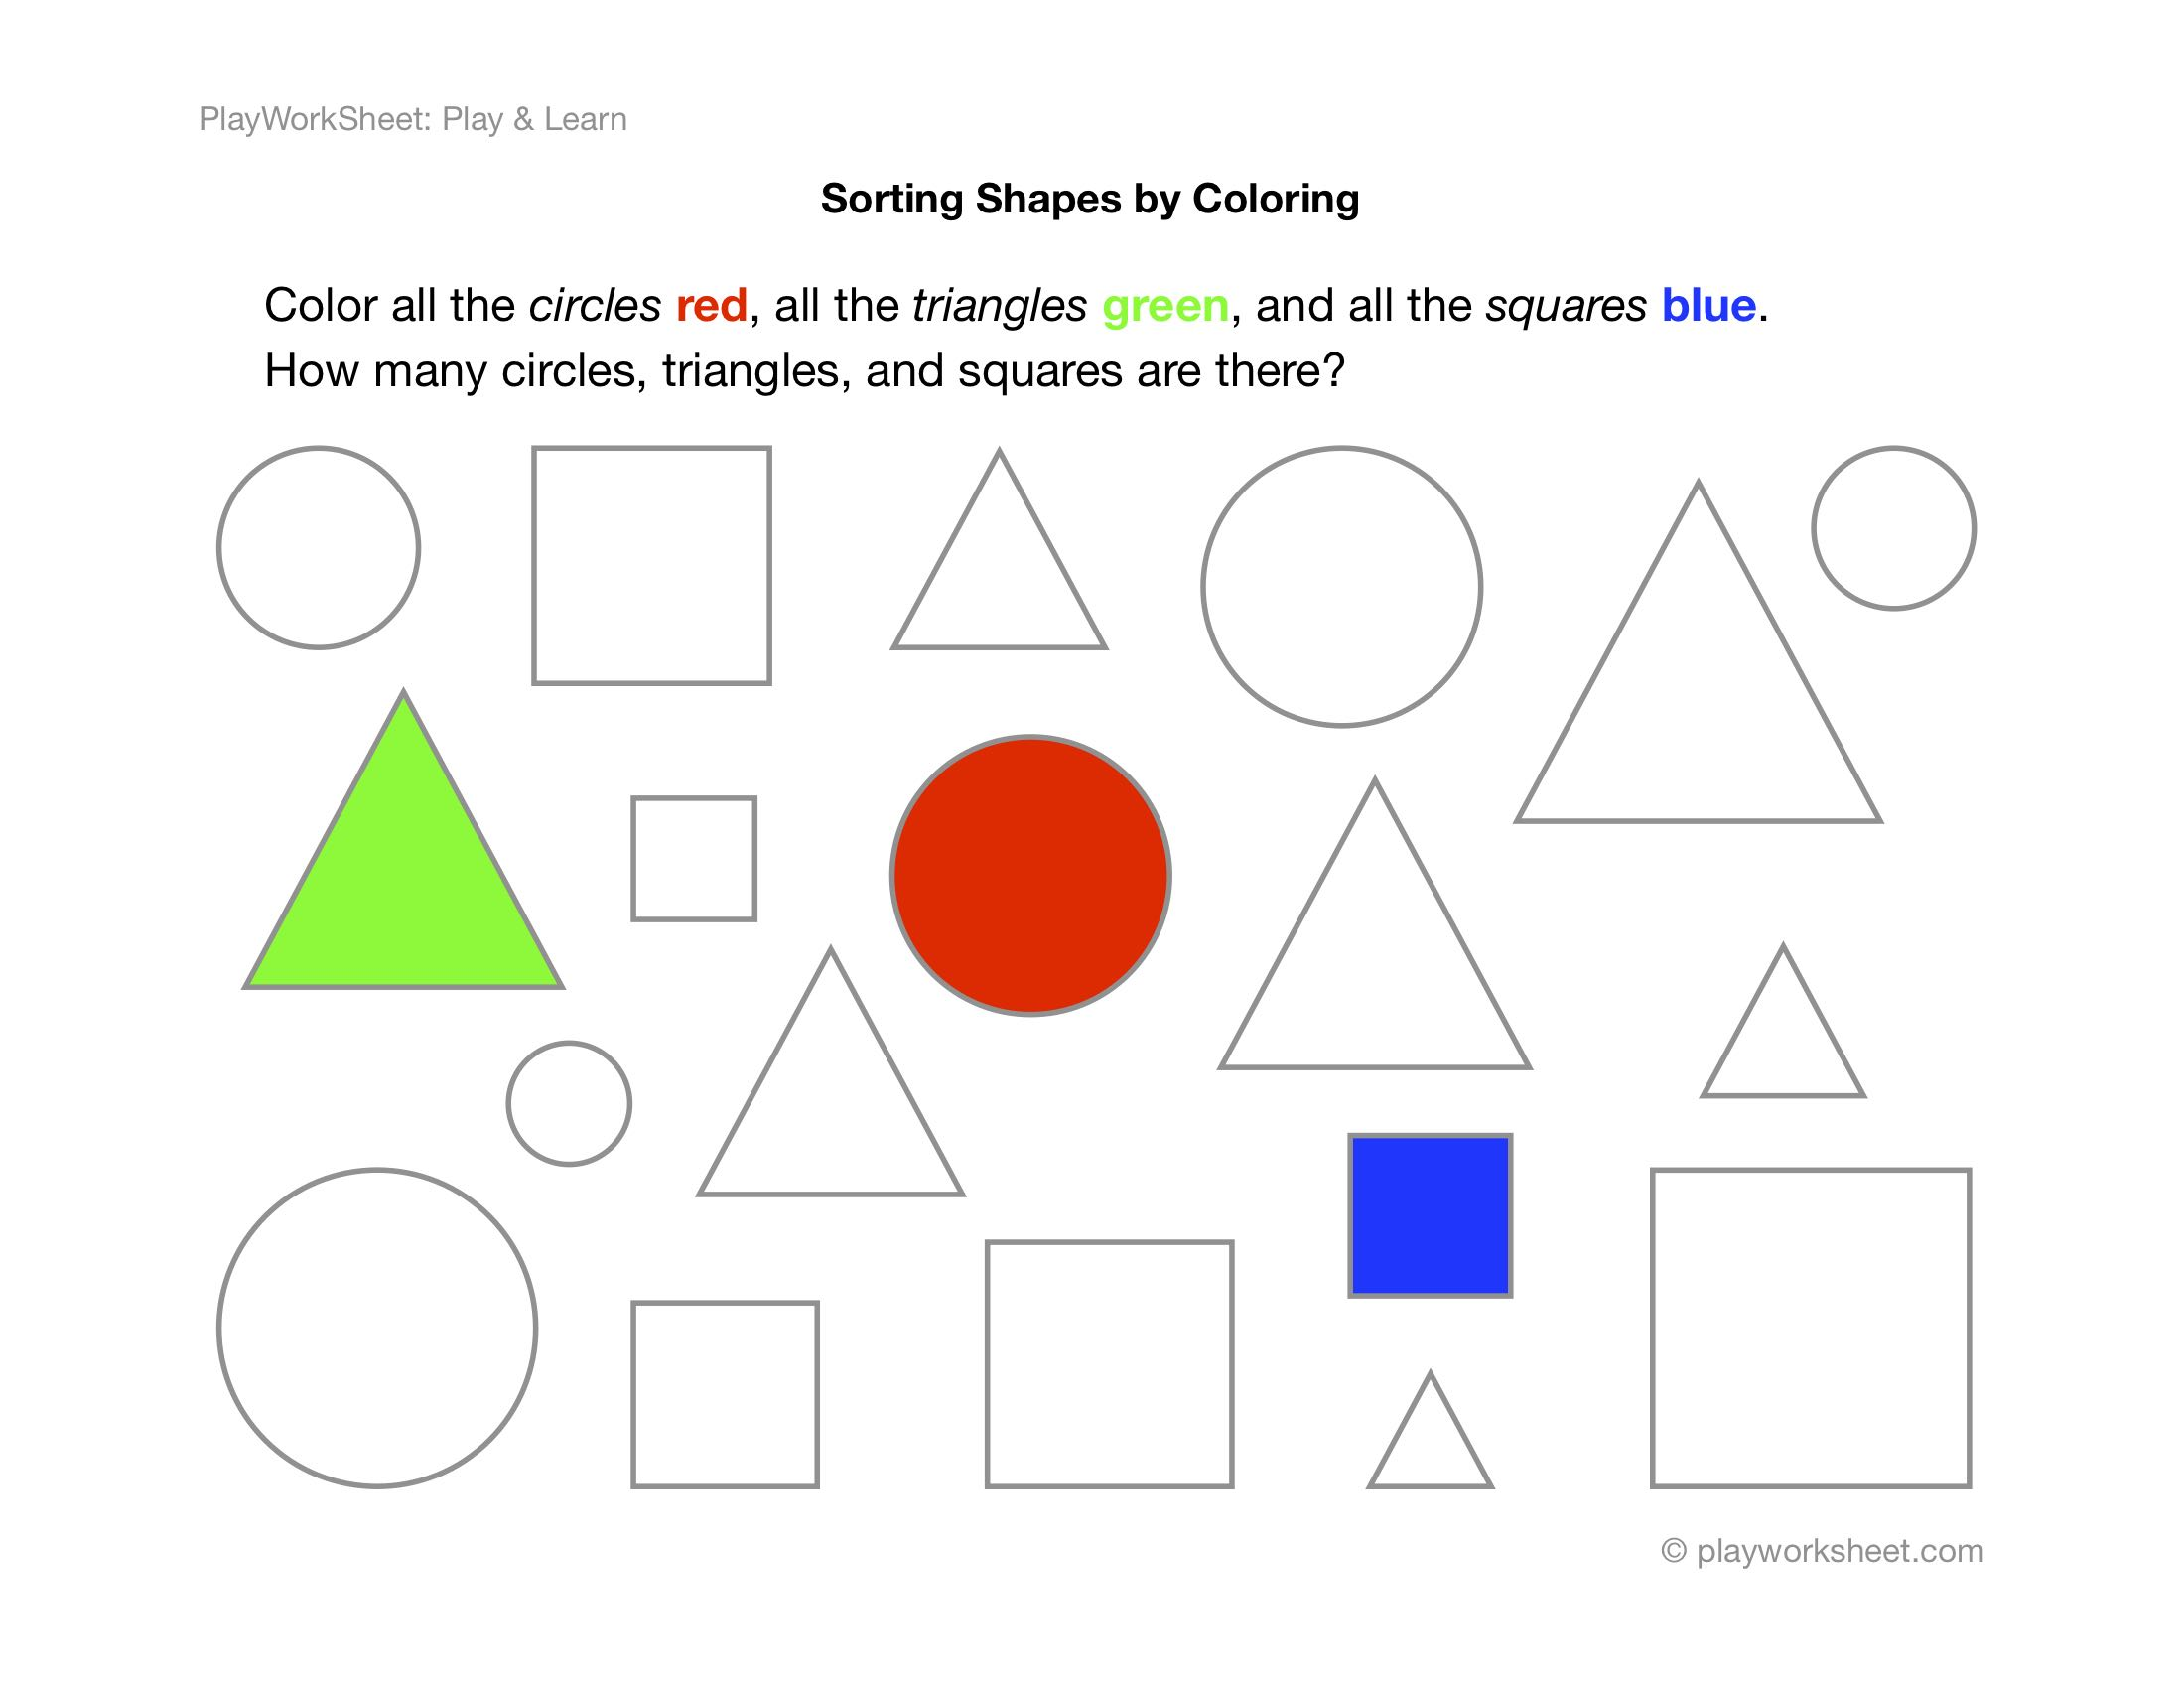 Exercise For Sorting Shapes By Coloring